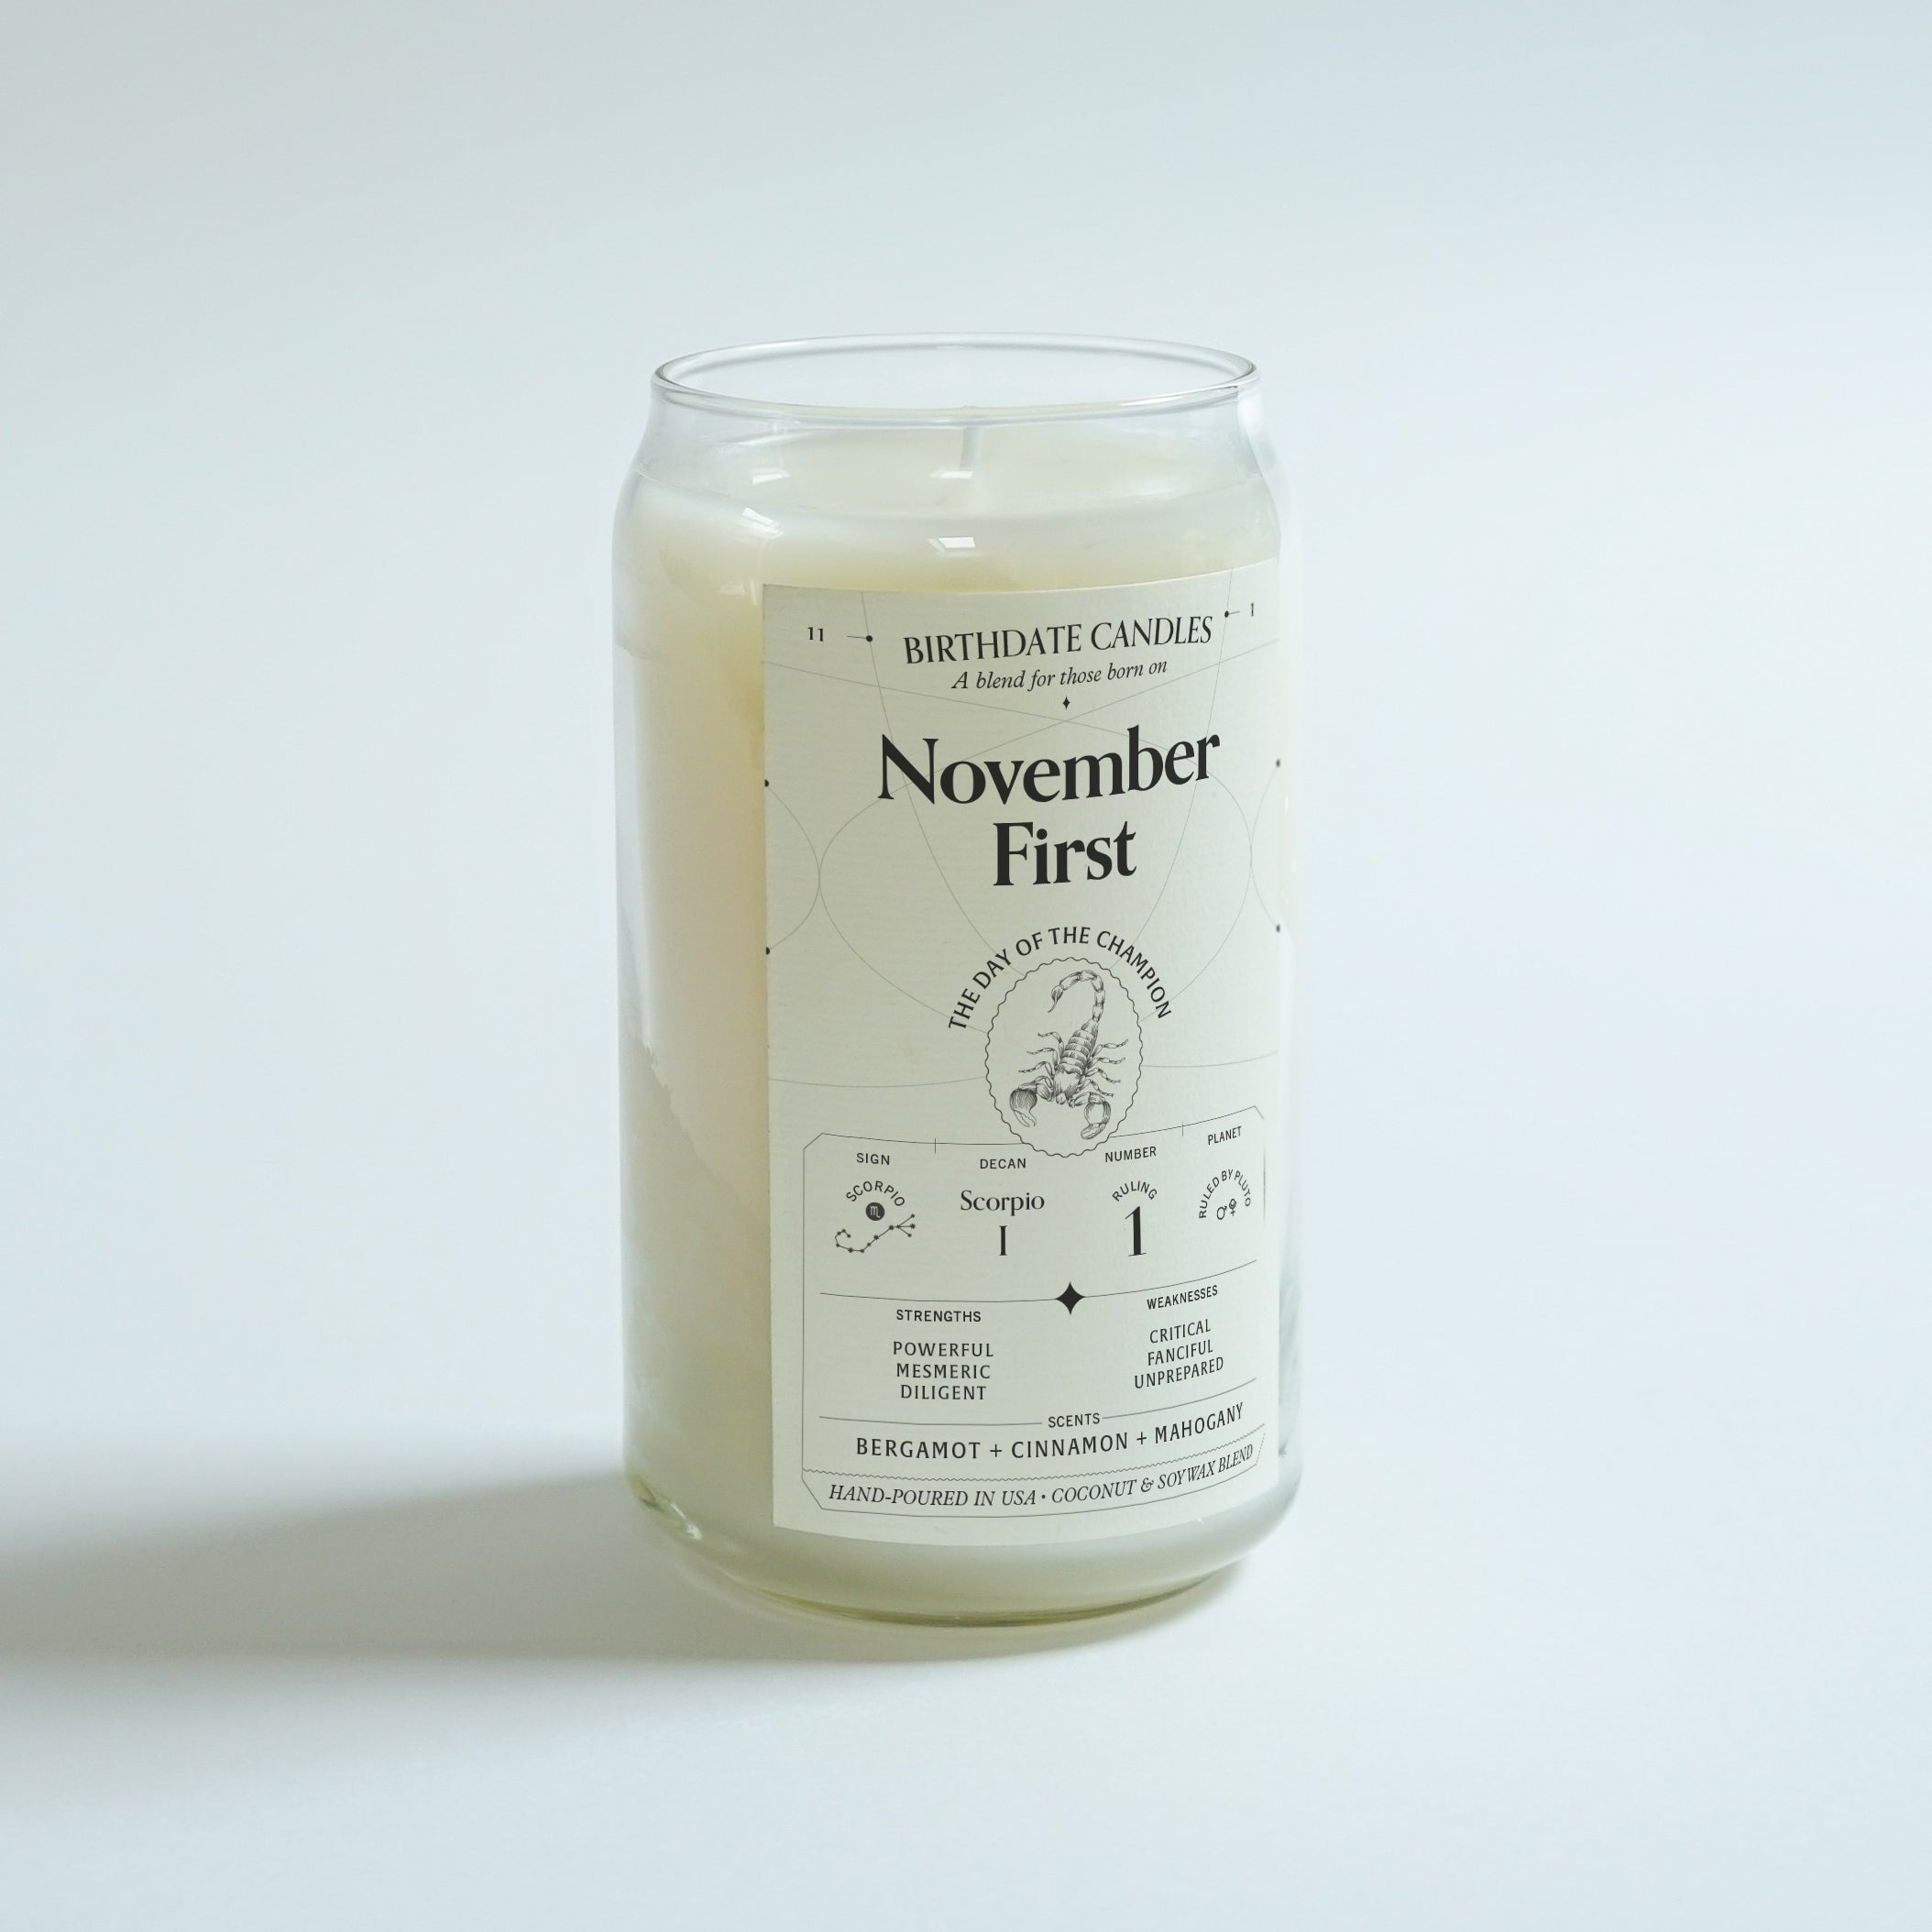 The November First Candle